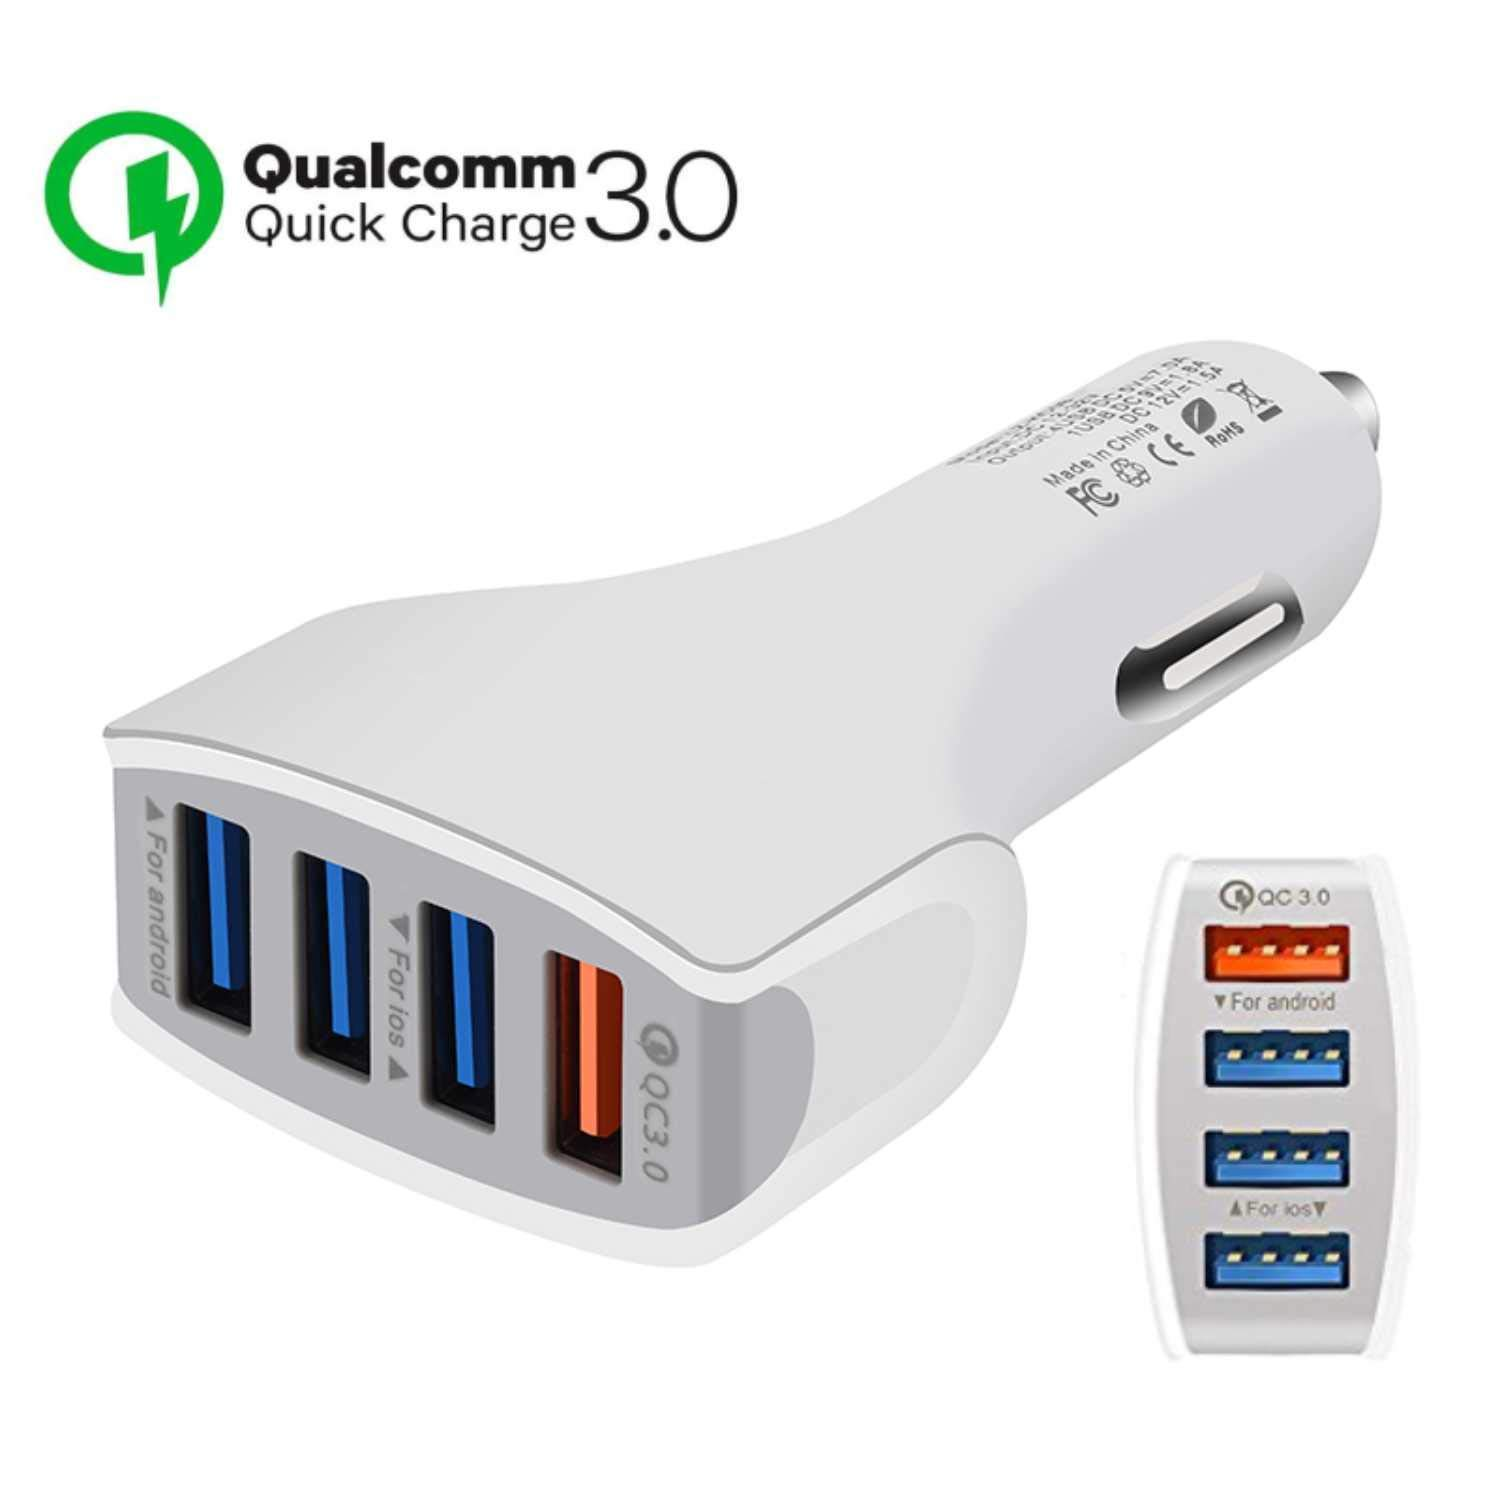 White TJC Car Charger Quick Charge 3.0 4 Ports USB Qualcomm QC 3.0 Fast Charging Adapter Multi Protection Technology Compatible with Android Smartphones Samsung S9//S8 Plus,Sony,iPhone X//8 iPad